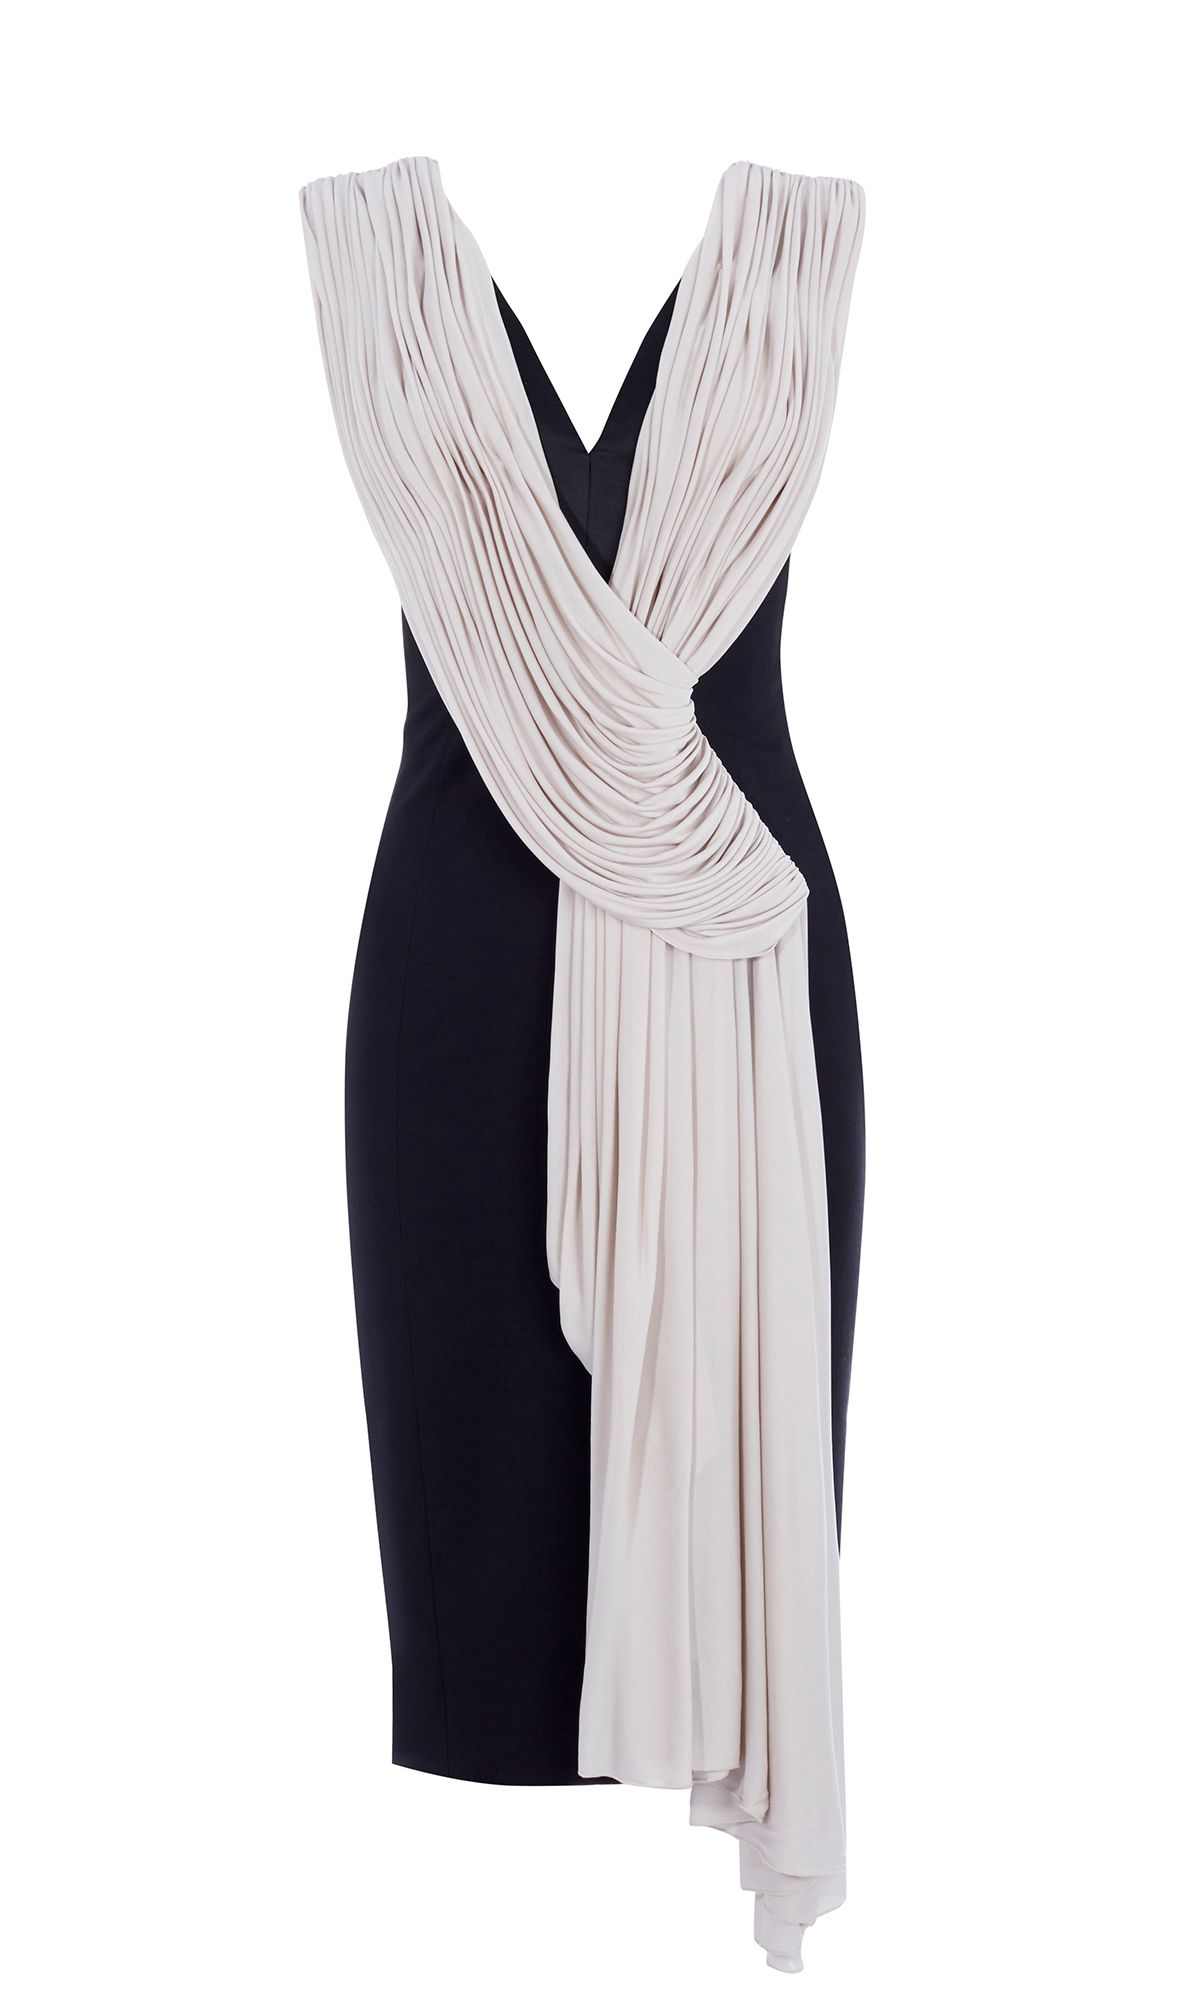 Karen Millen Crepe And Drape Pencil Dress, Black/White